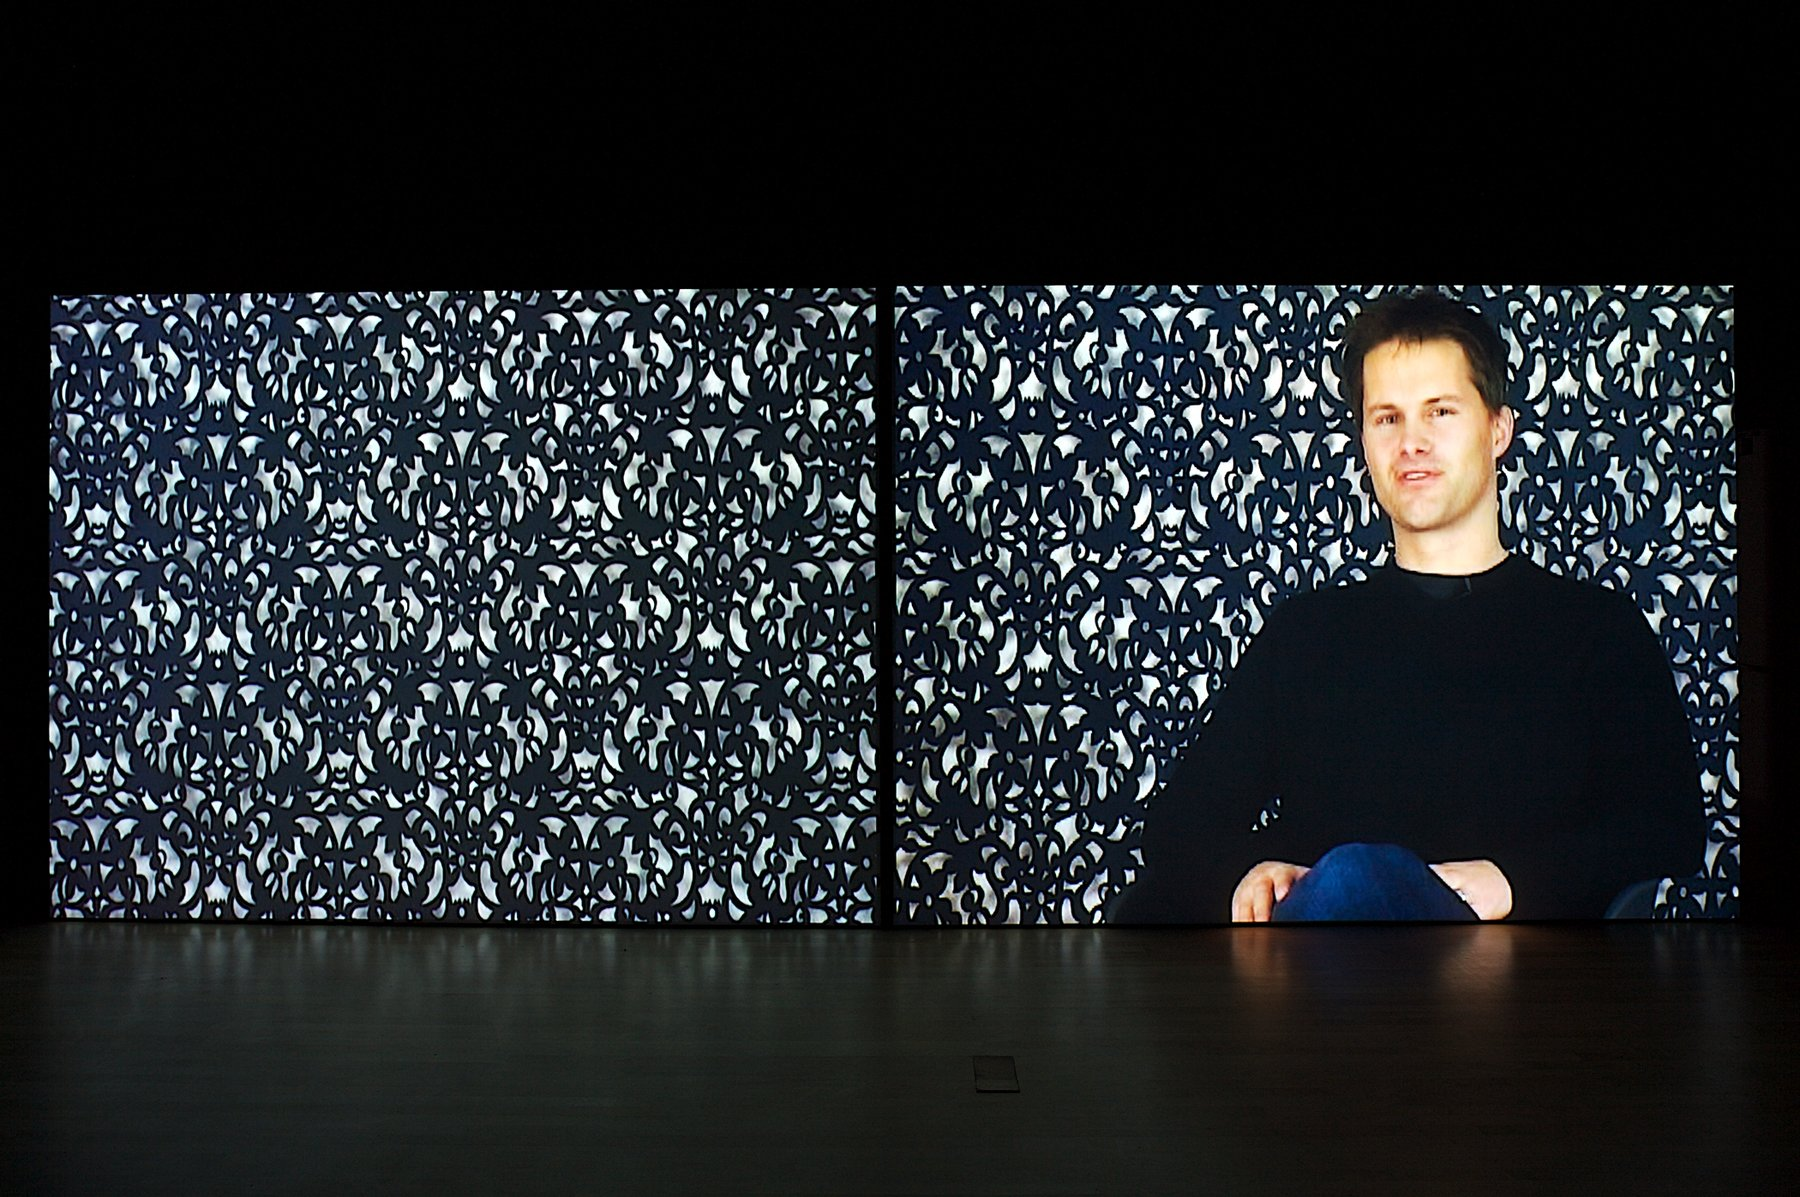 An image of a man sitting in front of a patterned wall.